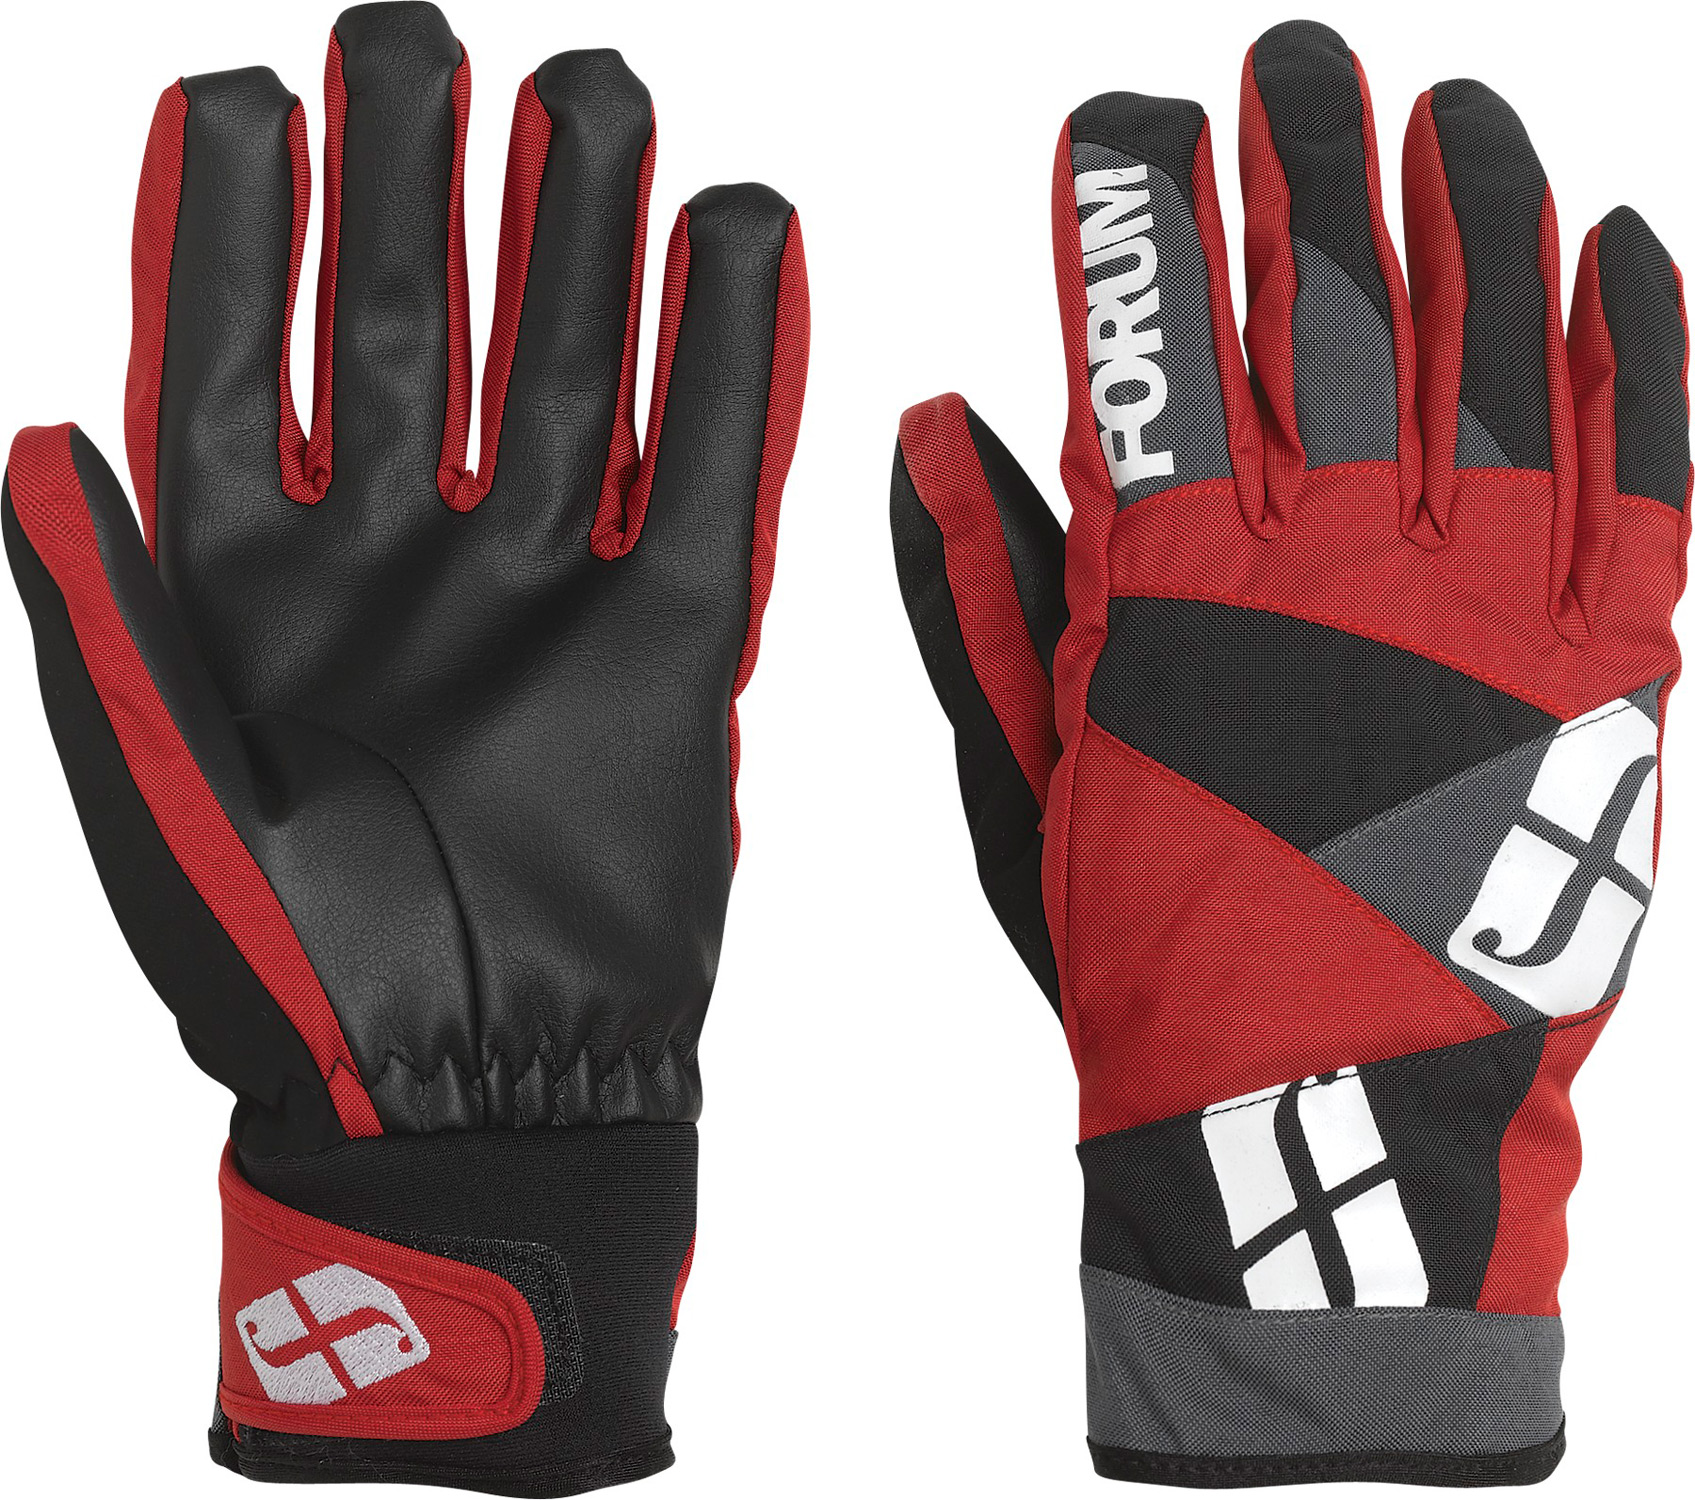 Snowboard Key Features of the Forum Fair Snowboard Gloves: Lightly insulated spring glove Water-repellent barrier shell Hot Box insulation Soft-grip PU palm Soft fleece lining Adjustable cuffs Faux-suede nose-wipe - $26.95